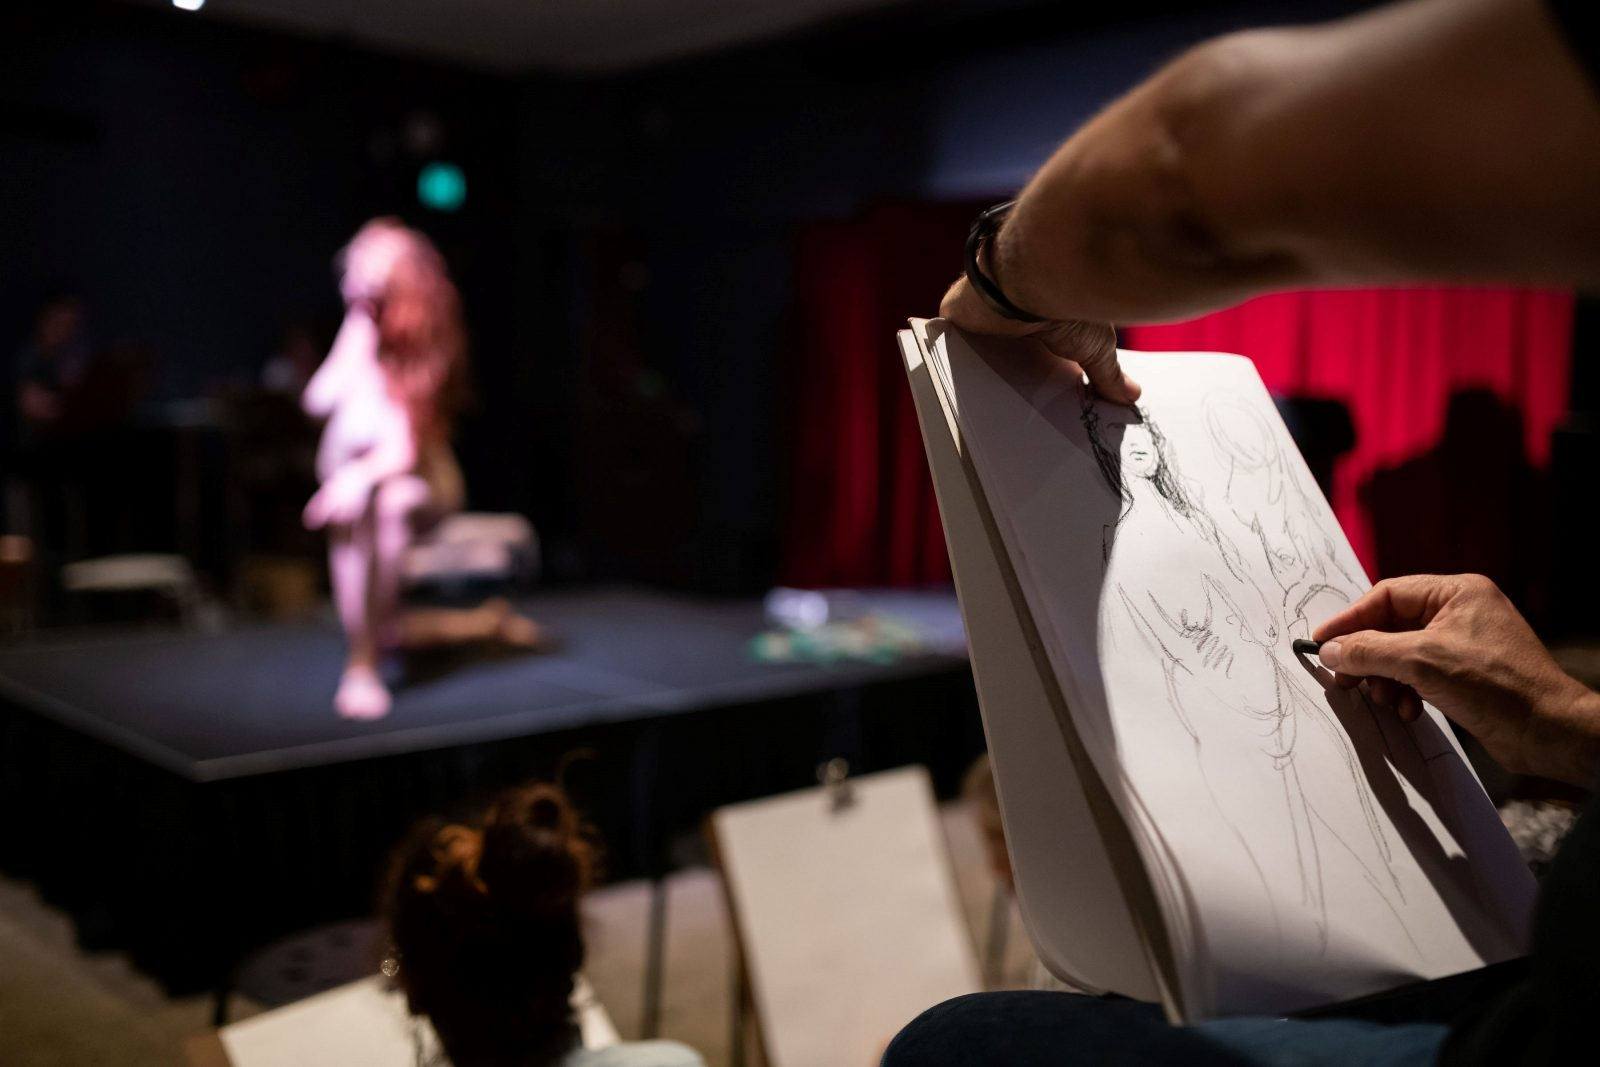 woman posing on a stage while people draw her on easels